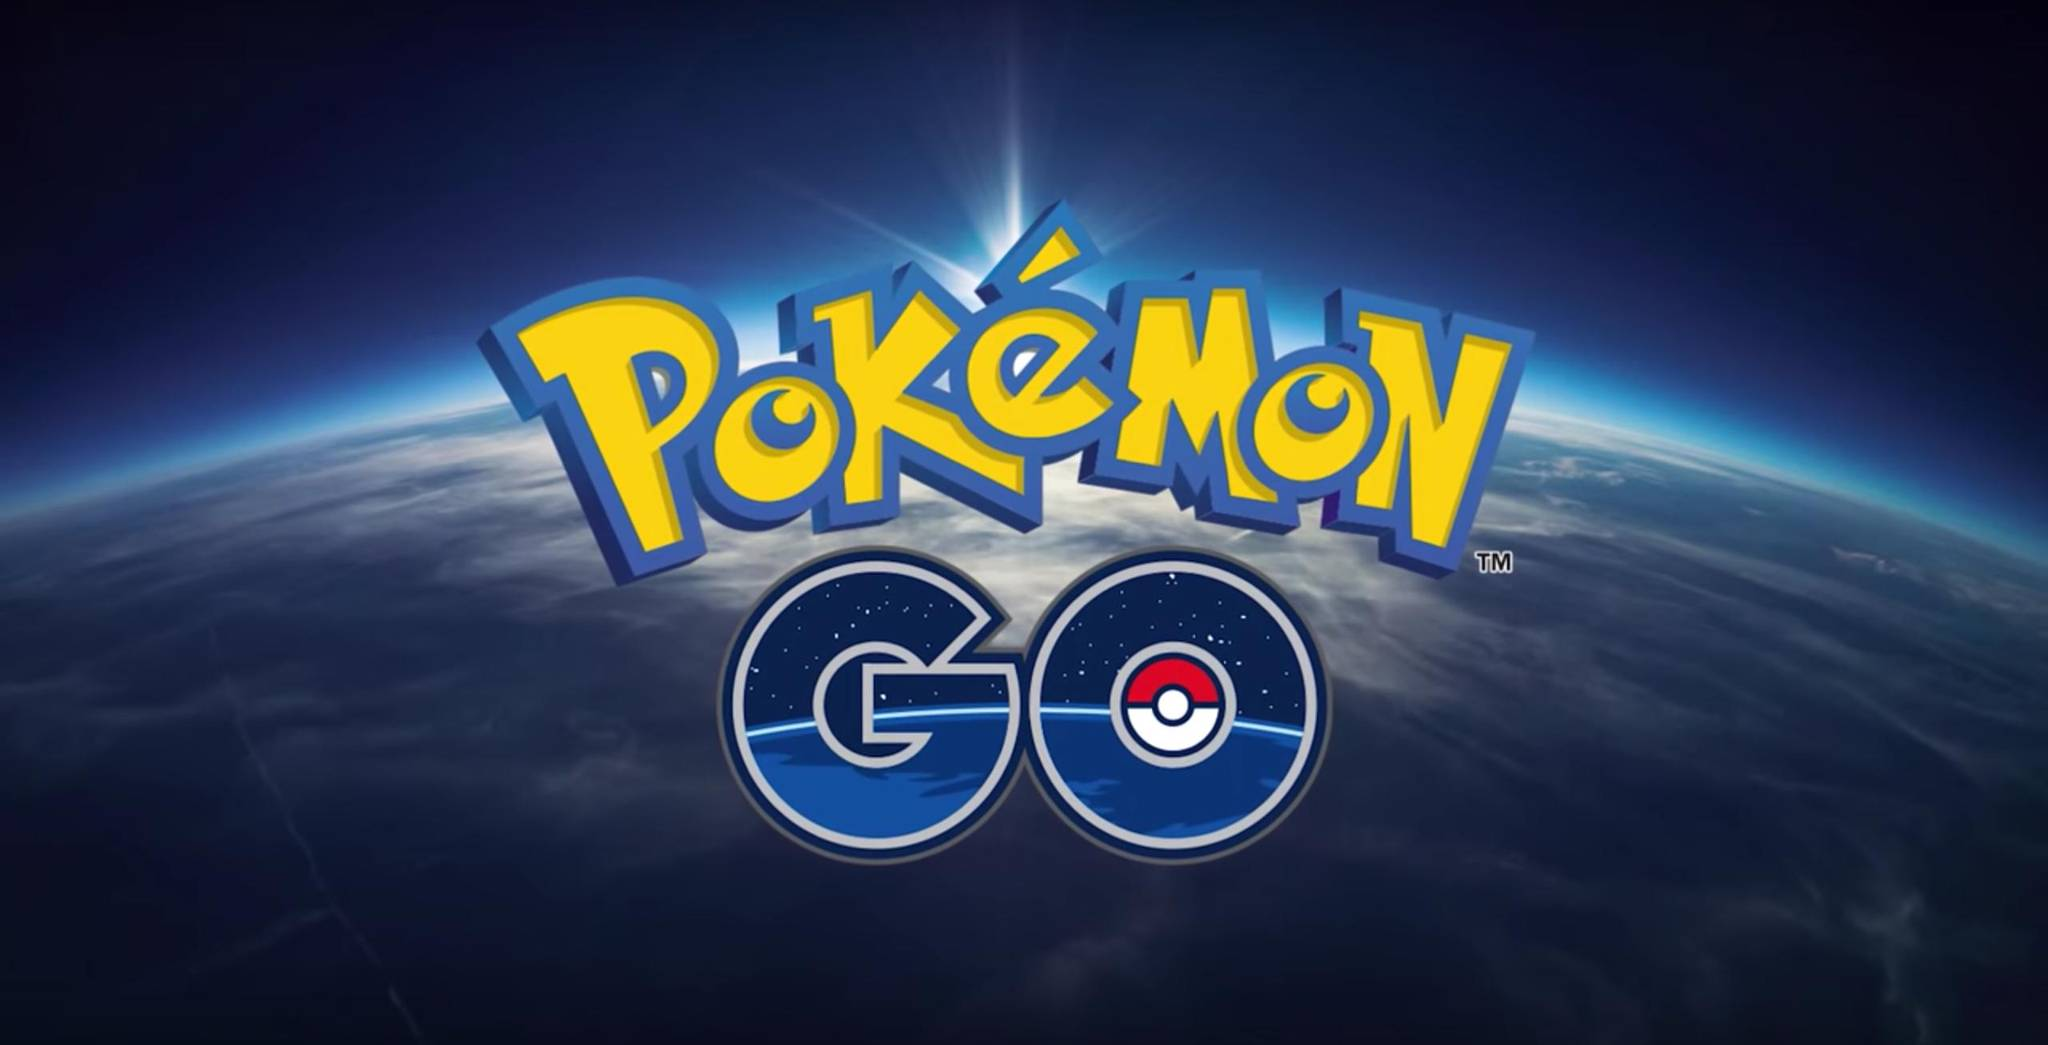 10 Ways Pokémon Go Could be Way Better